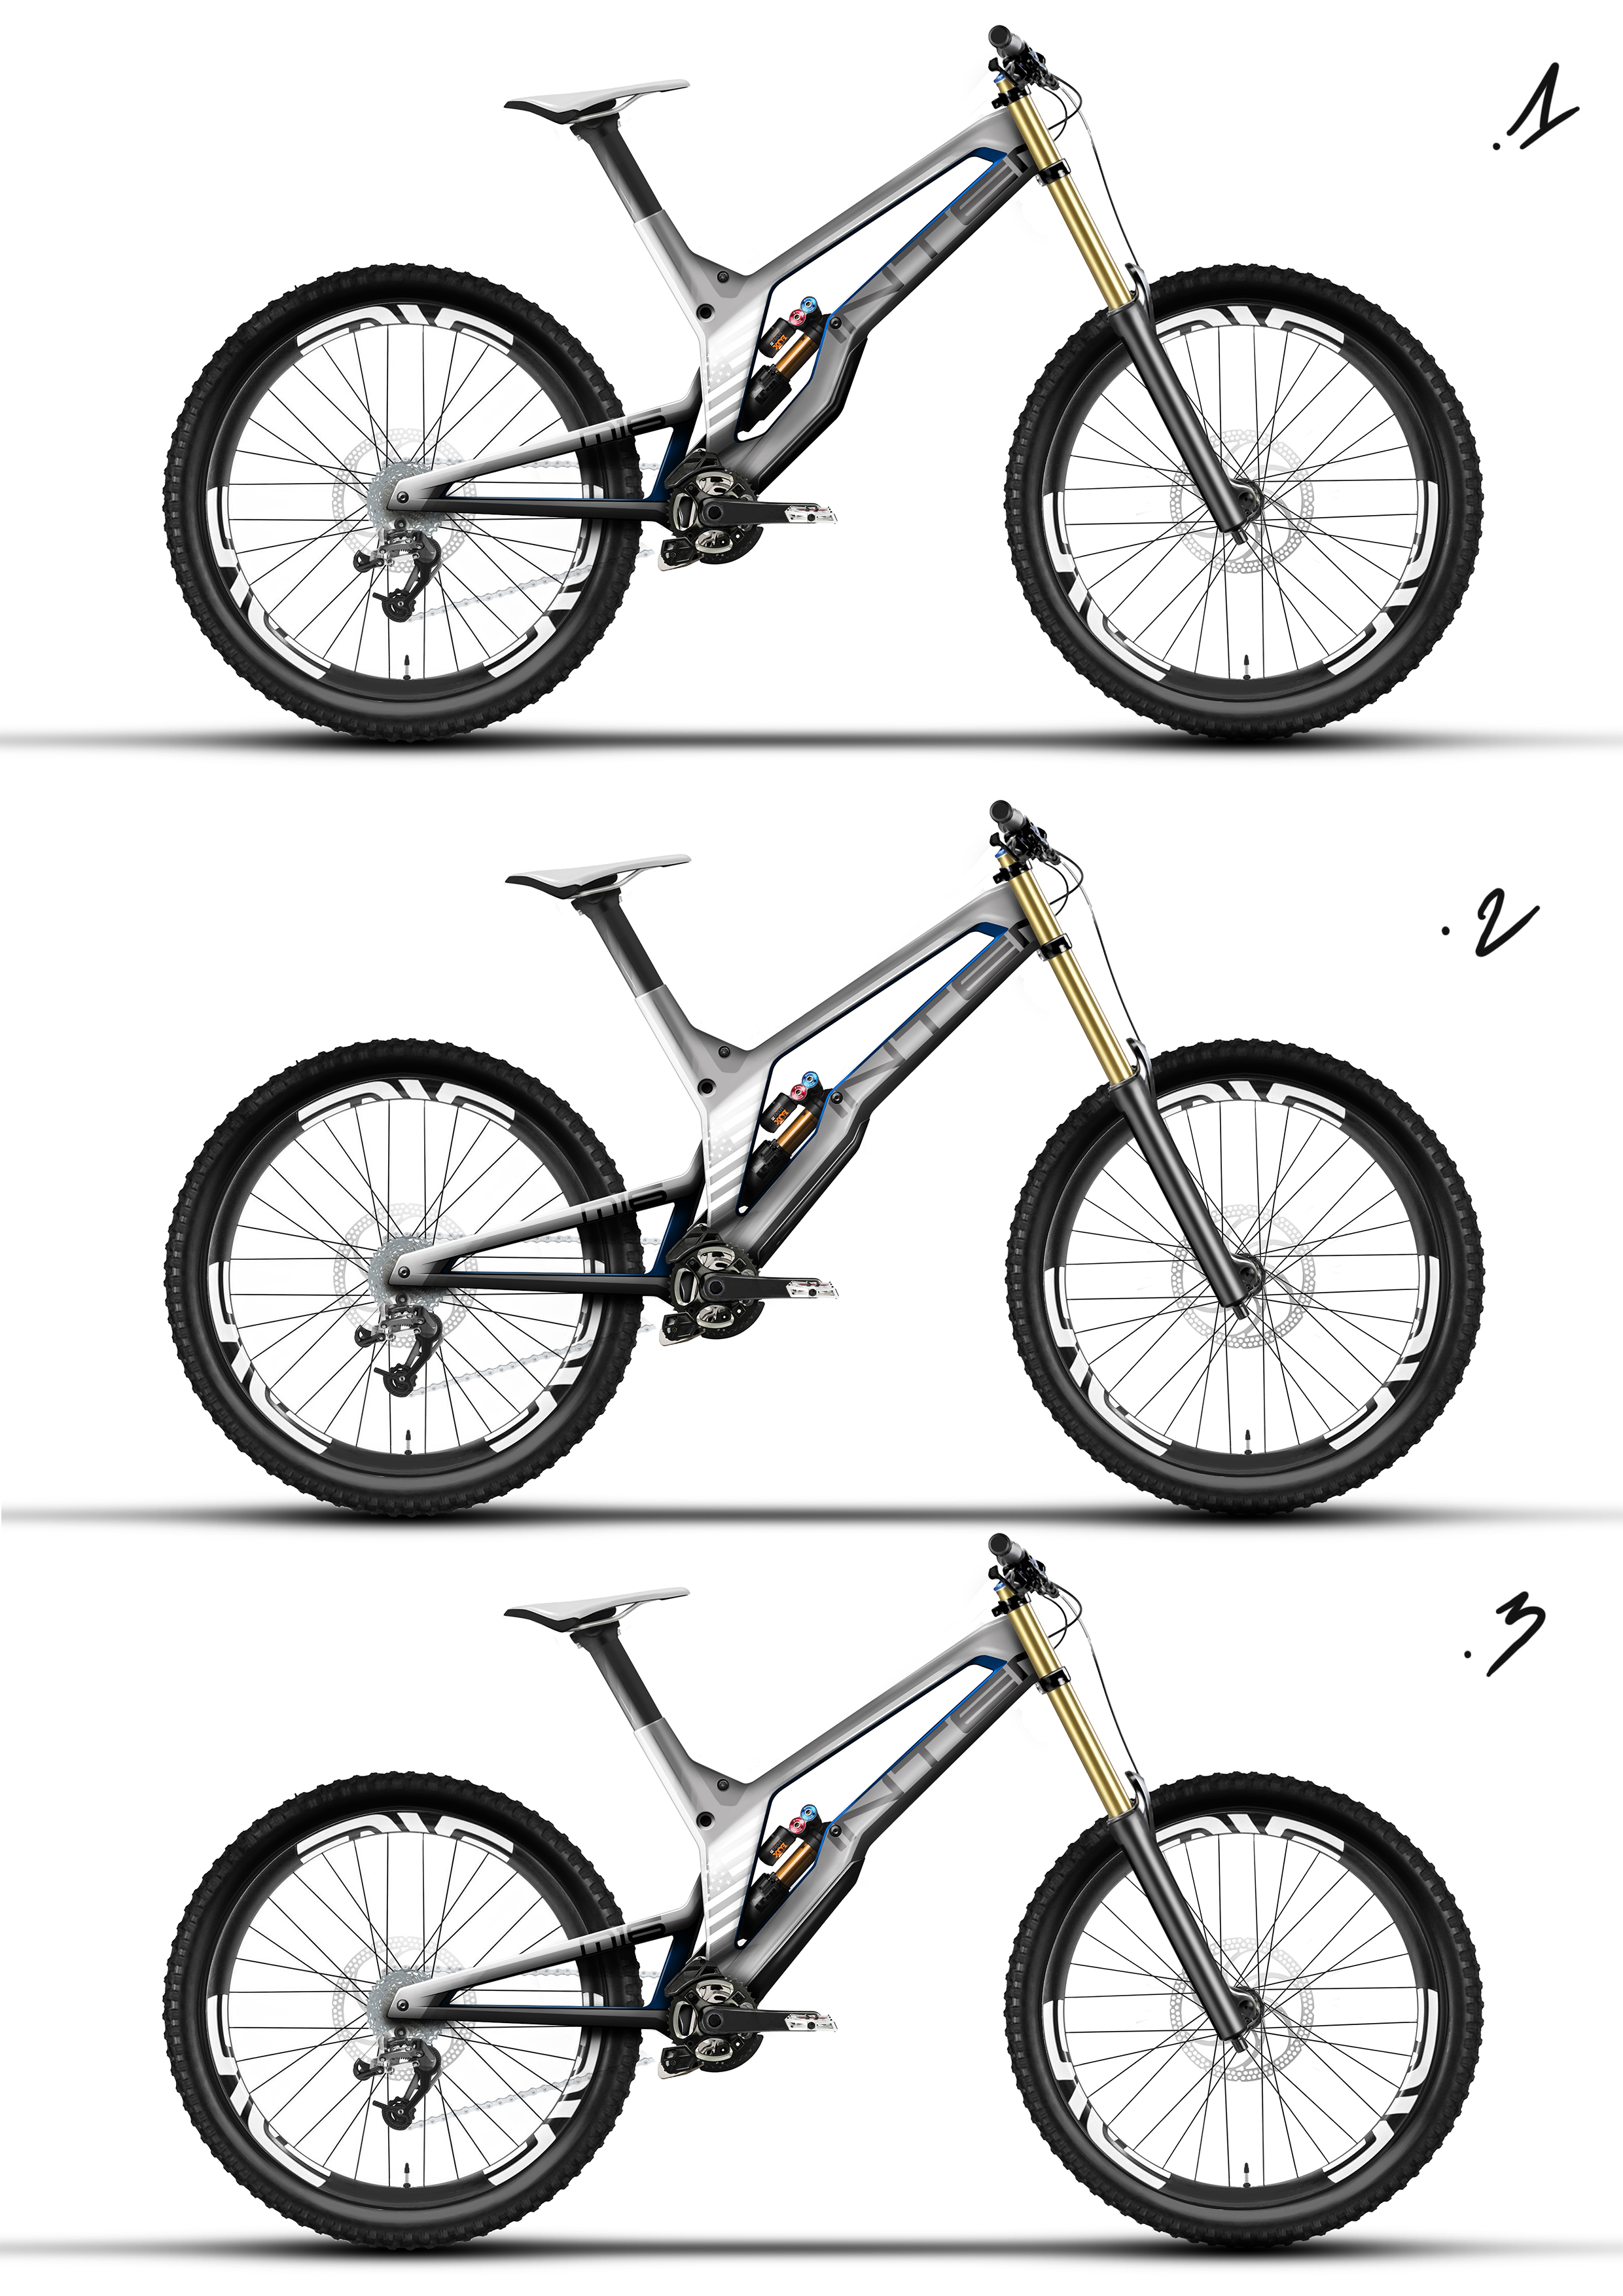 Downtube Proposals